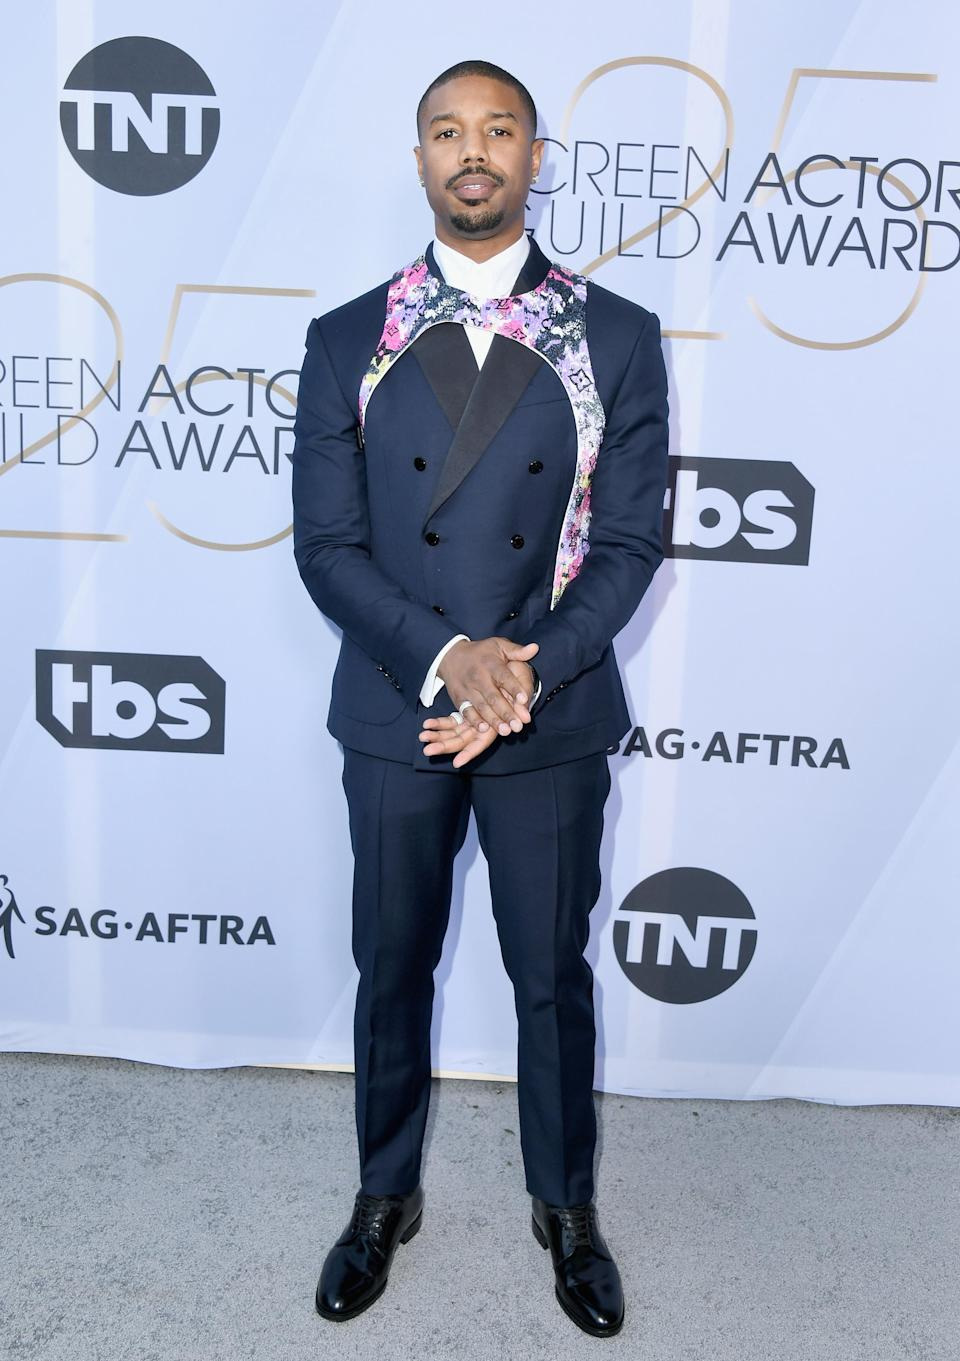 <p>Michael B. Jordan wore a Louis Vuitton custom tuxedo with a colorful embroidered harness to the 2019 Screen Actors Guild Awards in Los Angeles. (Photo: Getty Images) </p>